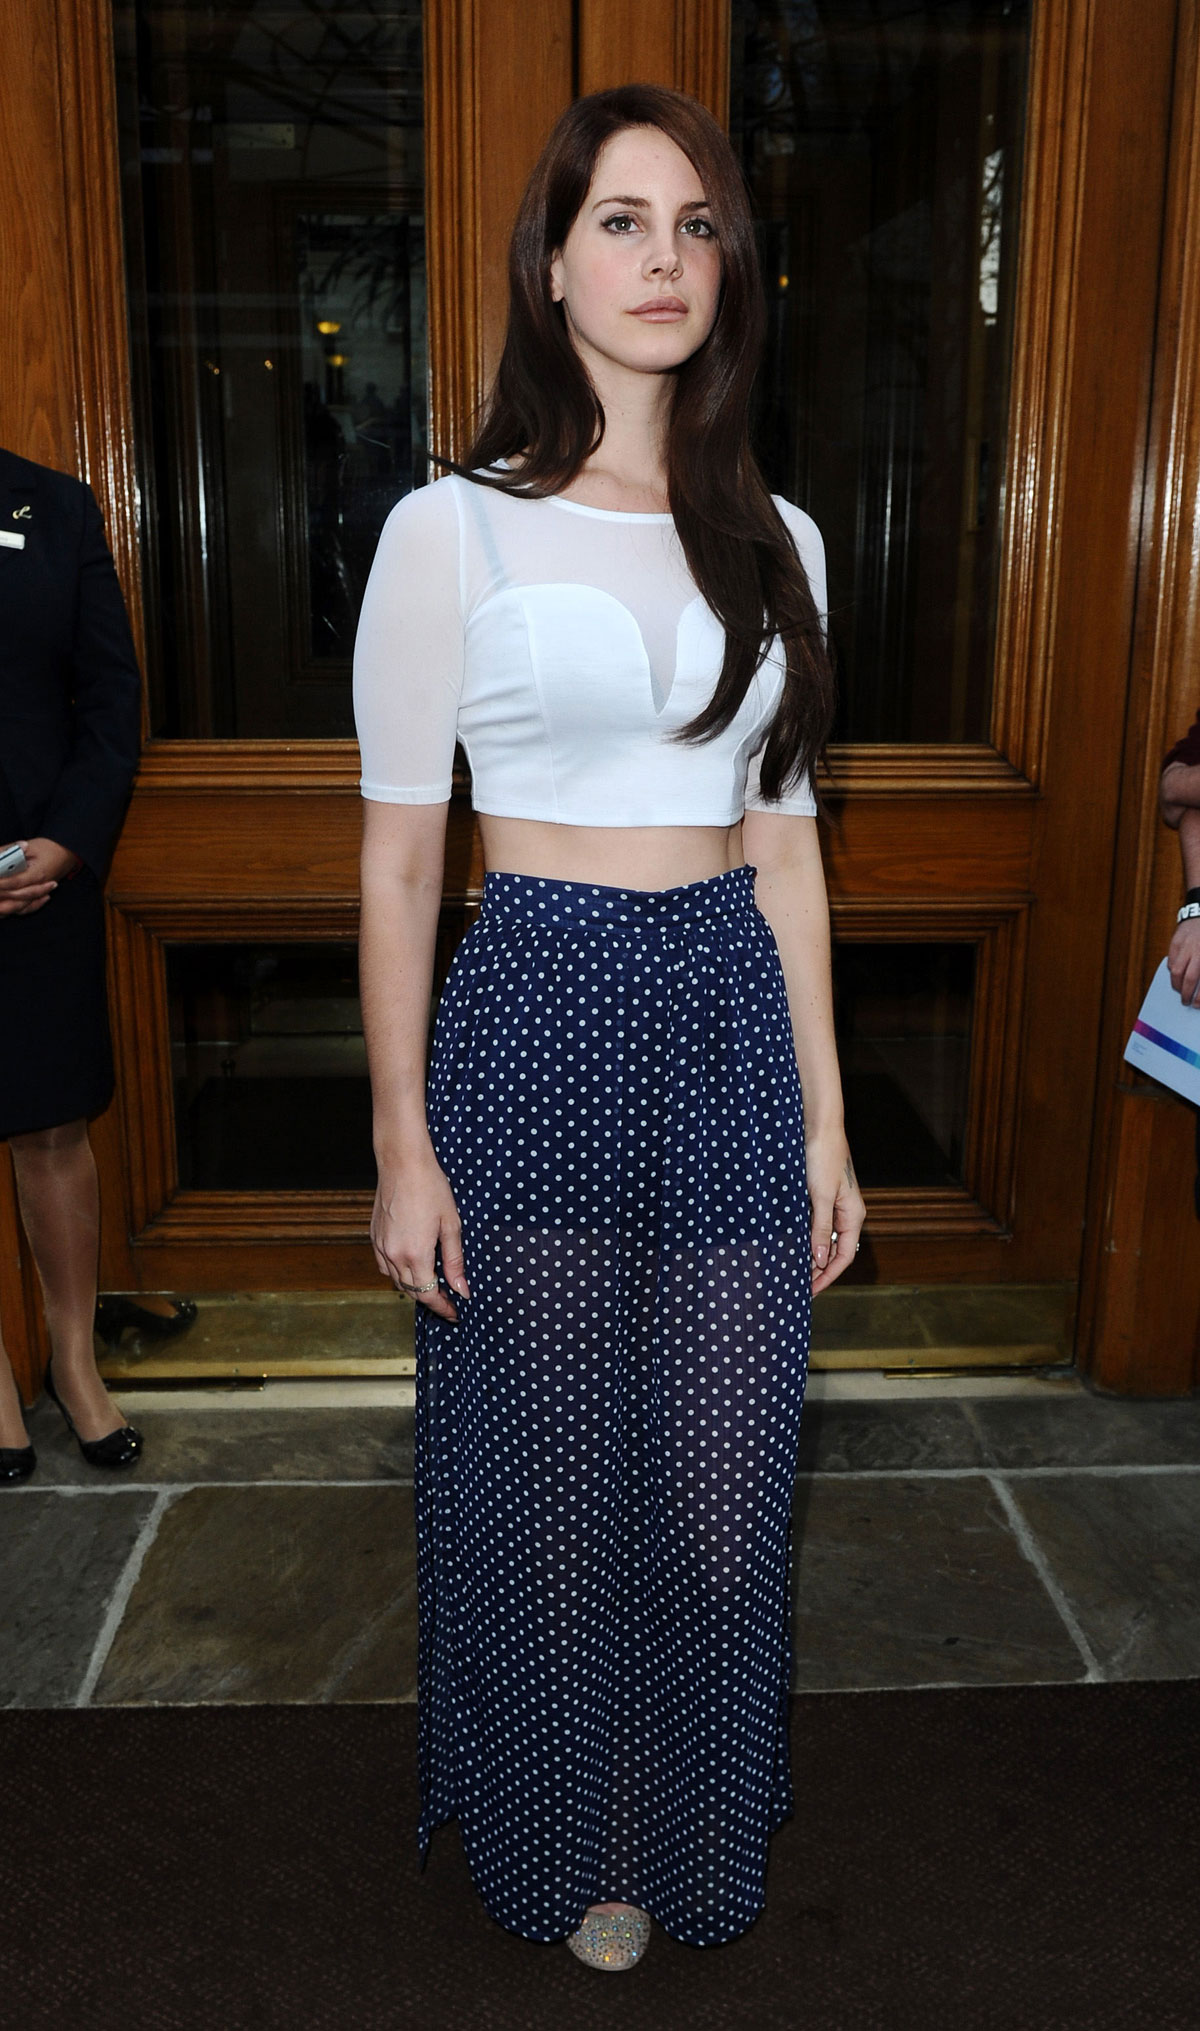 LANA Del REY at Her London's Hotel